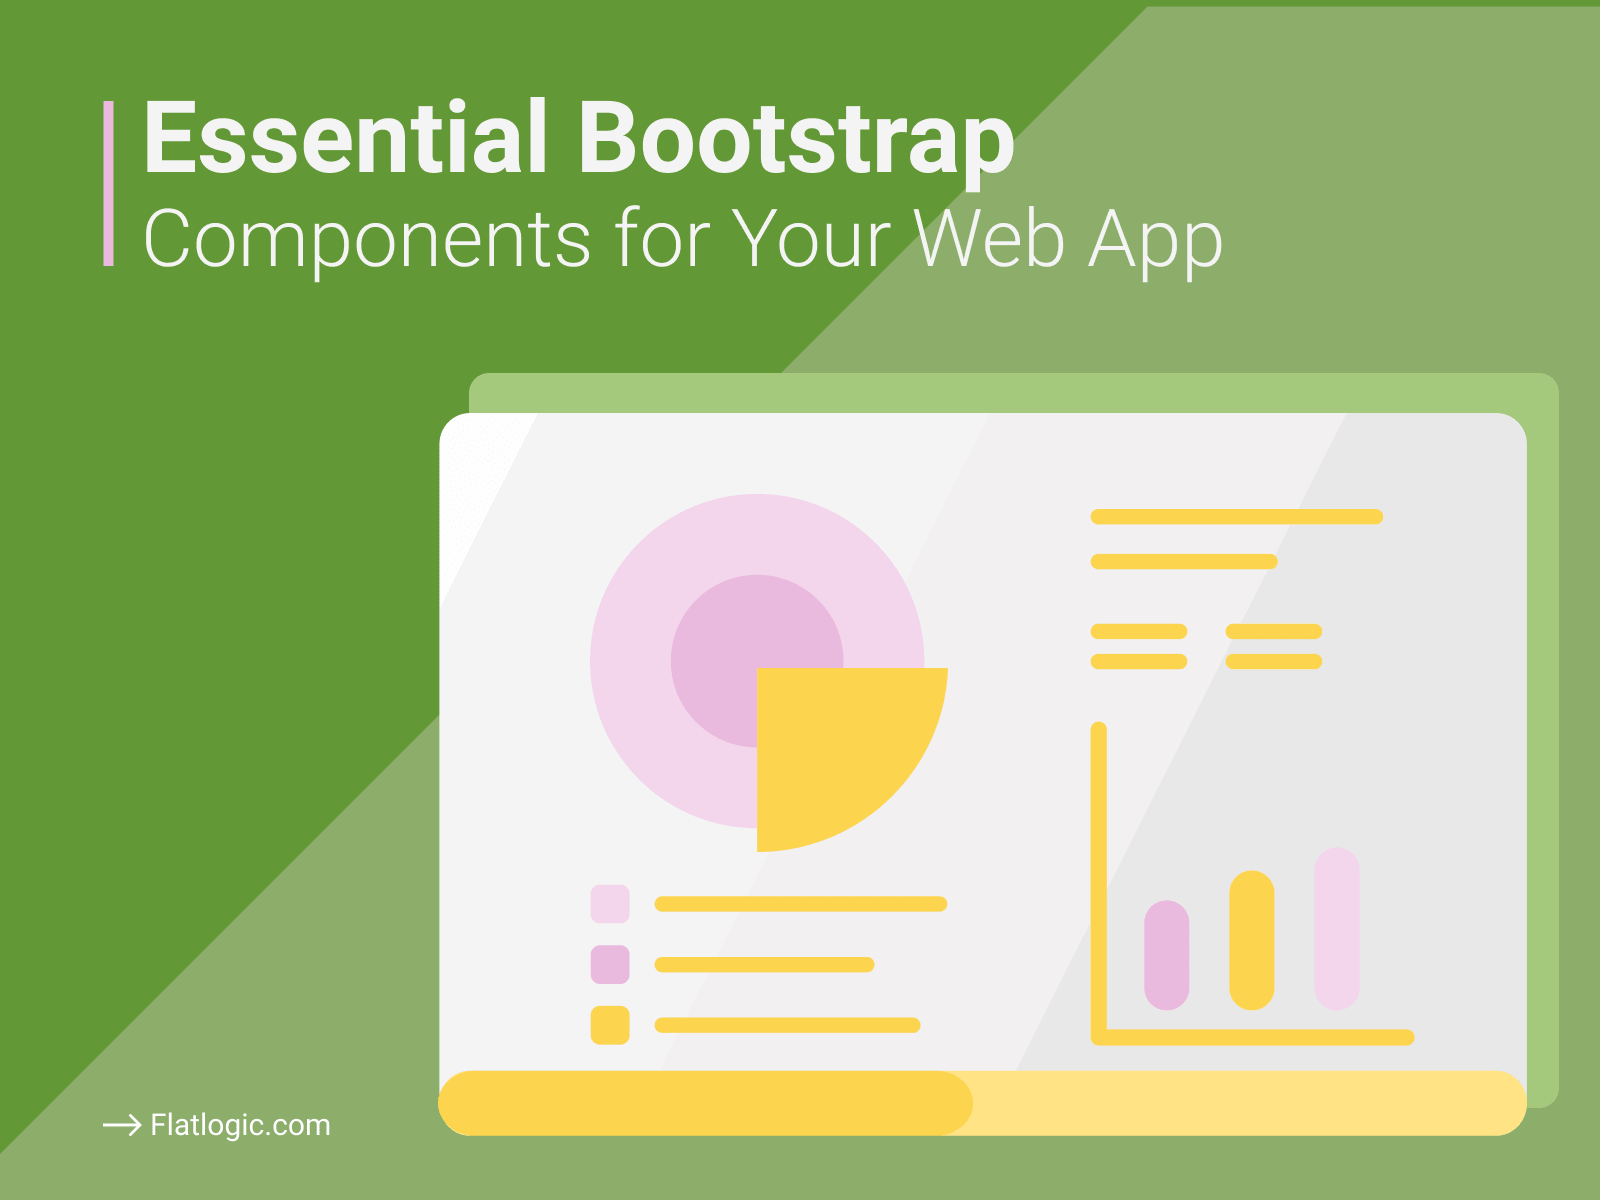 8 Essential Bootstrap Components for Your Web App